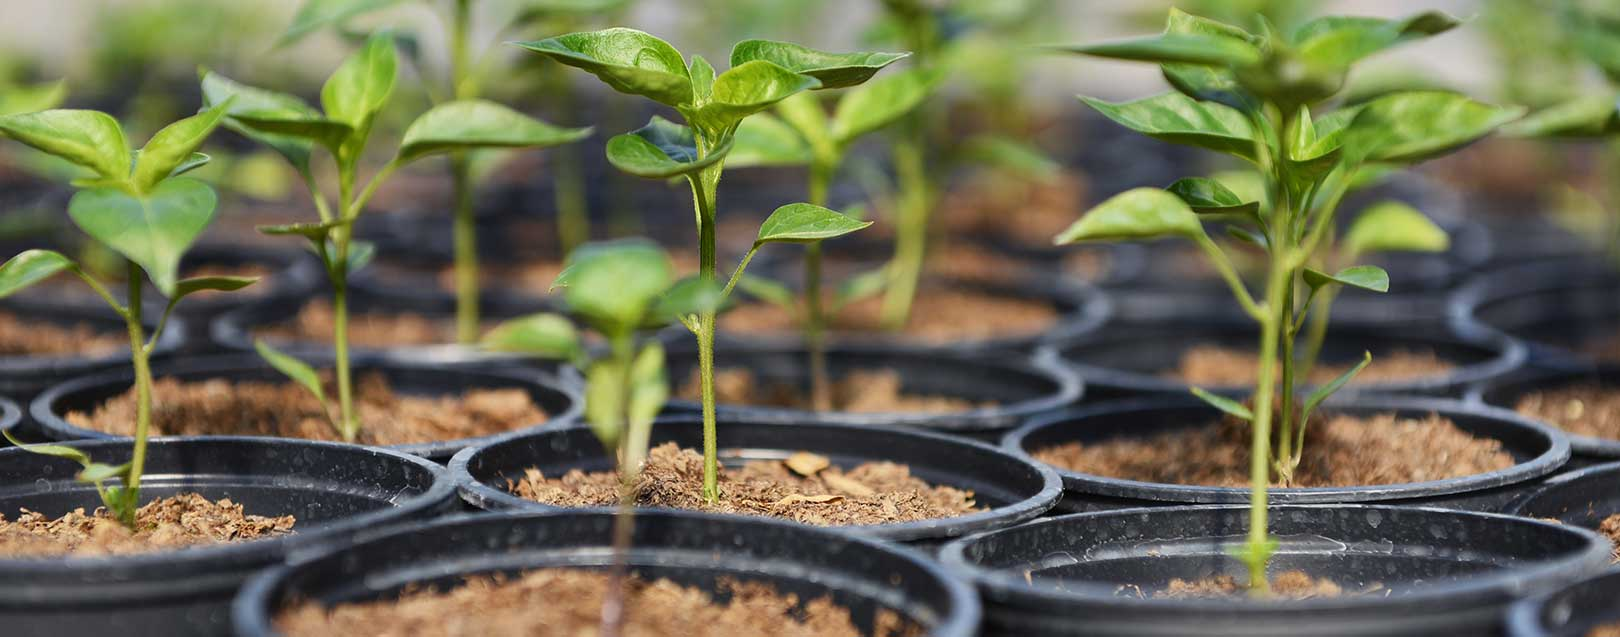 Govt revises inspection fee on plant material imports